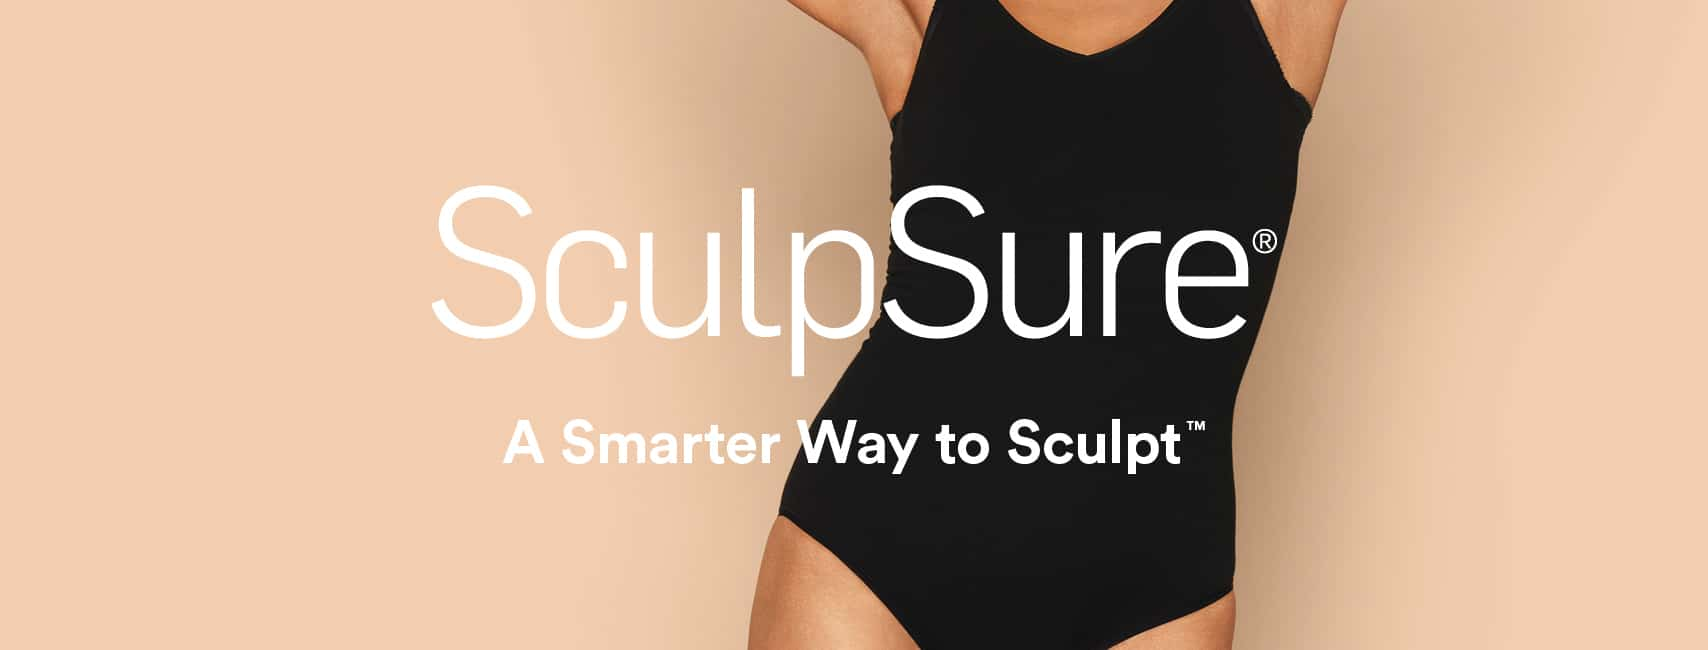 SculpSure Columbia SC